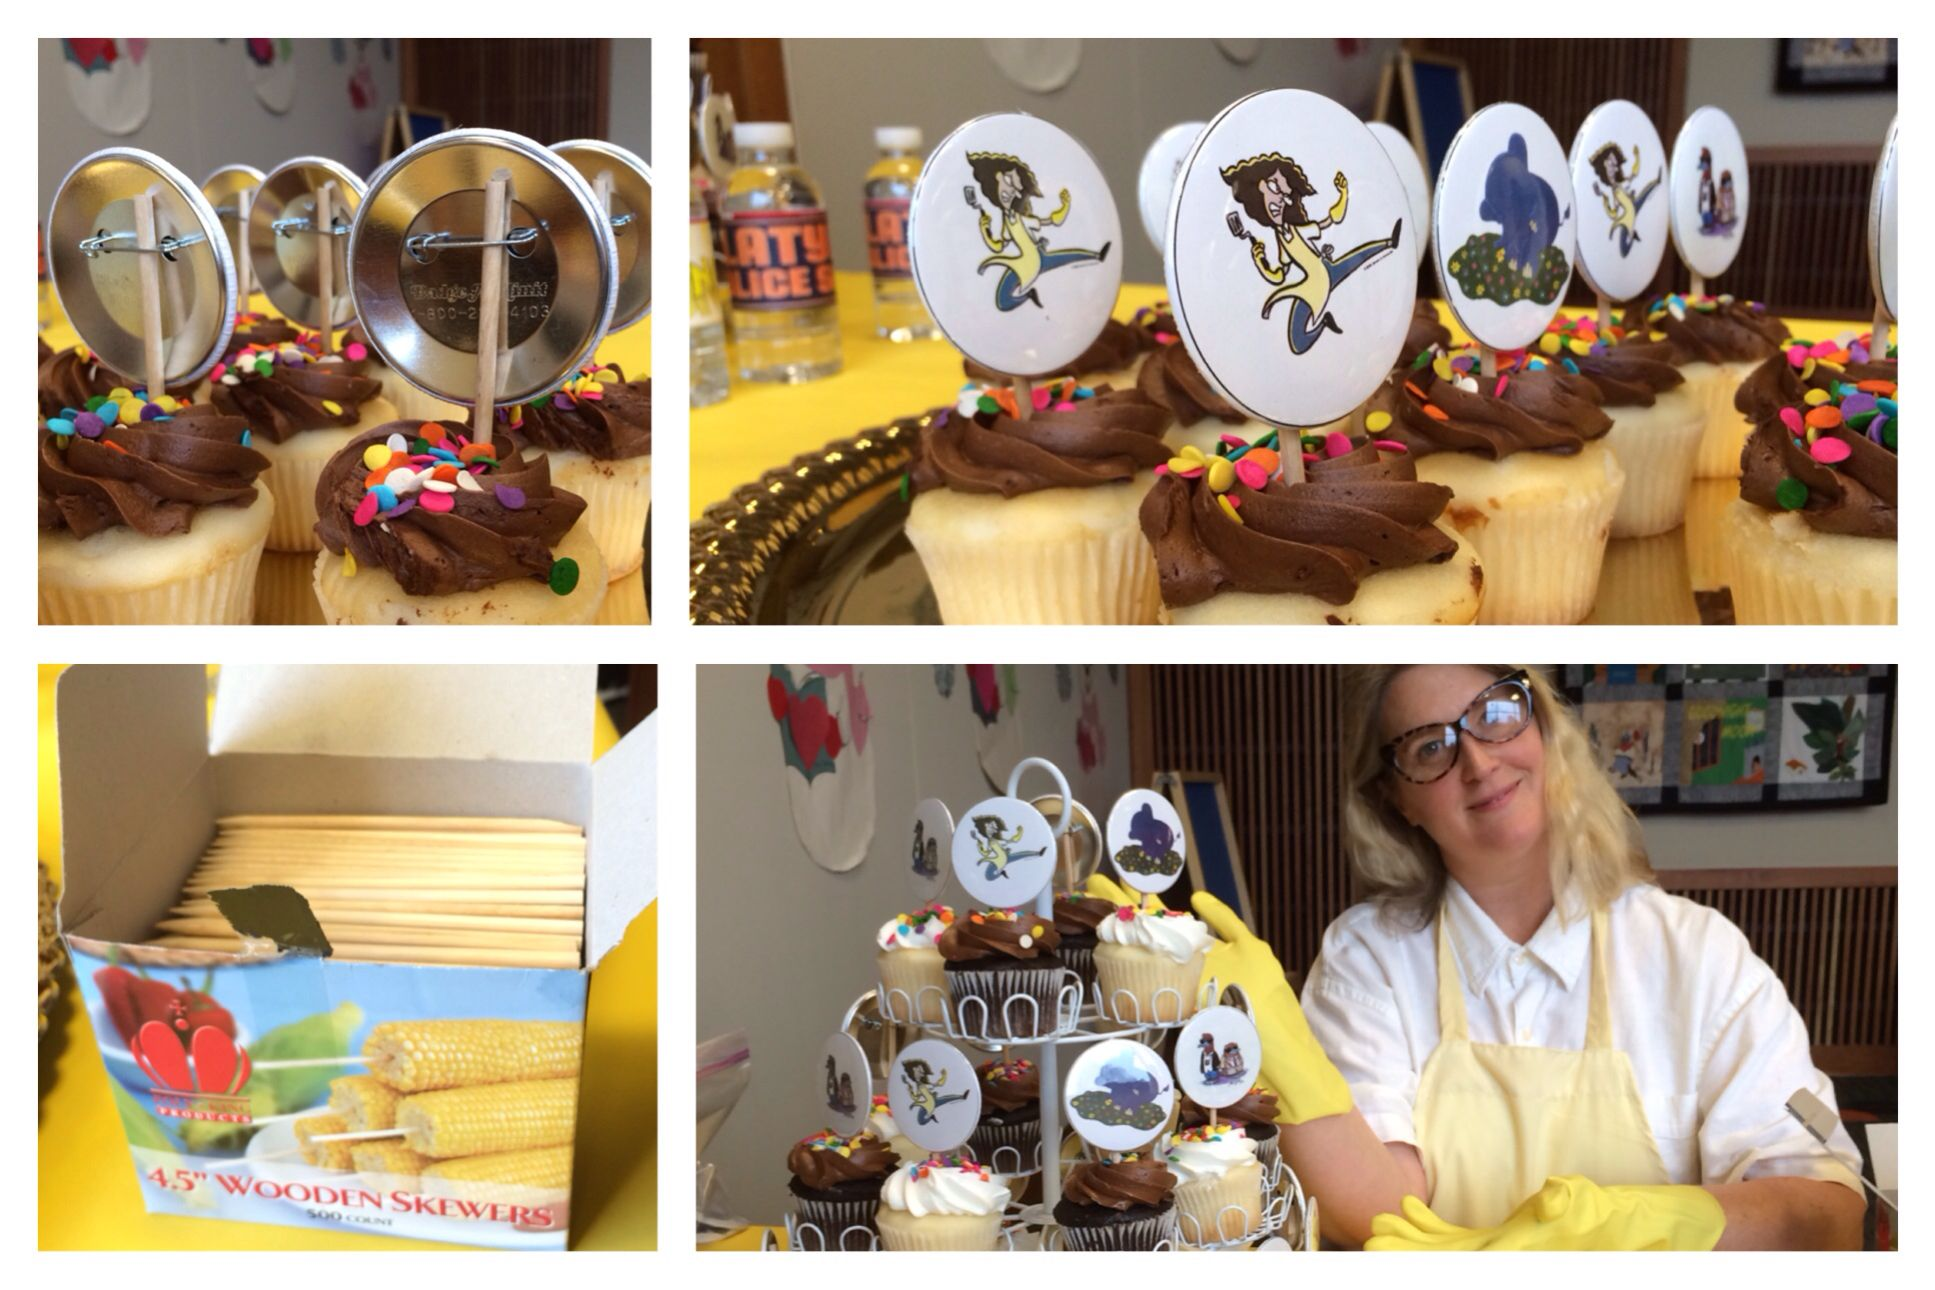 Librarian Eva Volin served up some cupcakes adorned with Ollie, Lunch Lady and Platypus Police Squad buttons! Deceptively simple. Kids love cupcakes and buttons!